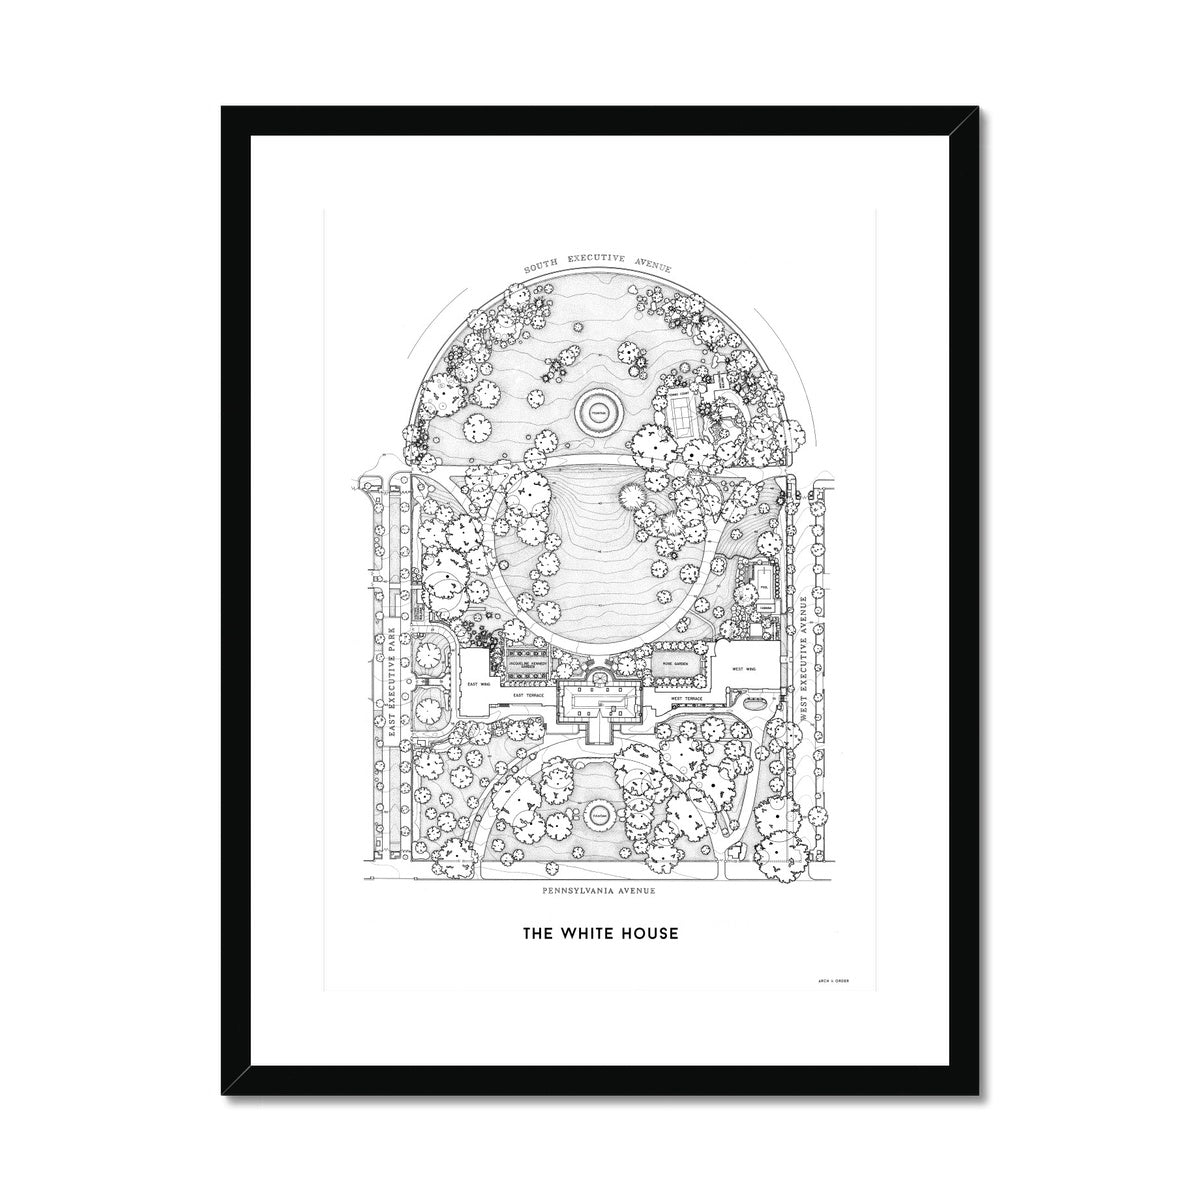 The White House Site Plan - White -  Framed & Mounted Print